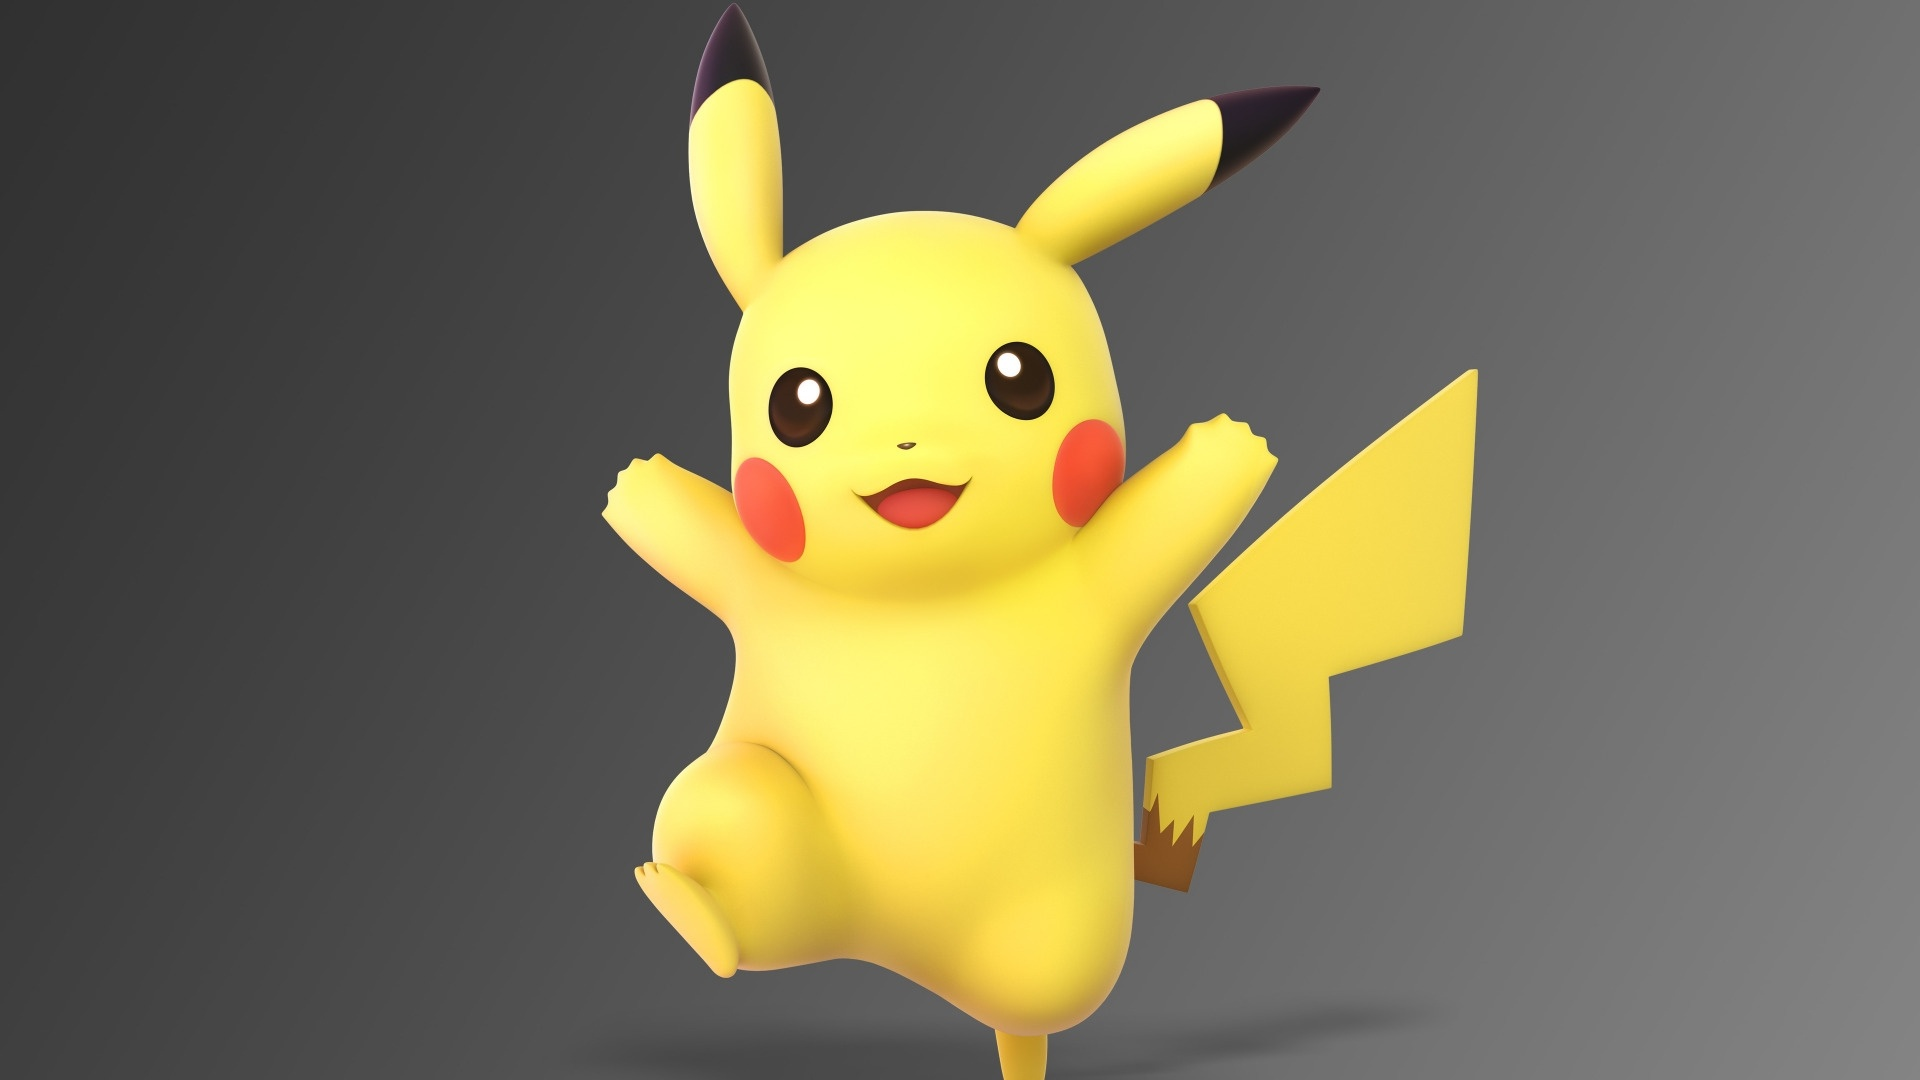 Pikachu desktop background